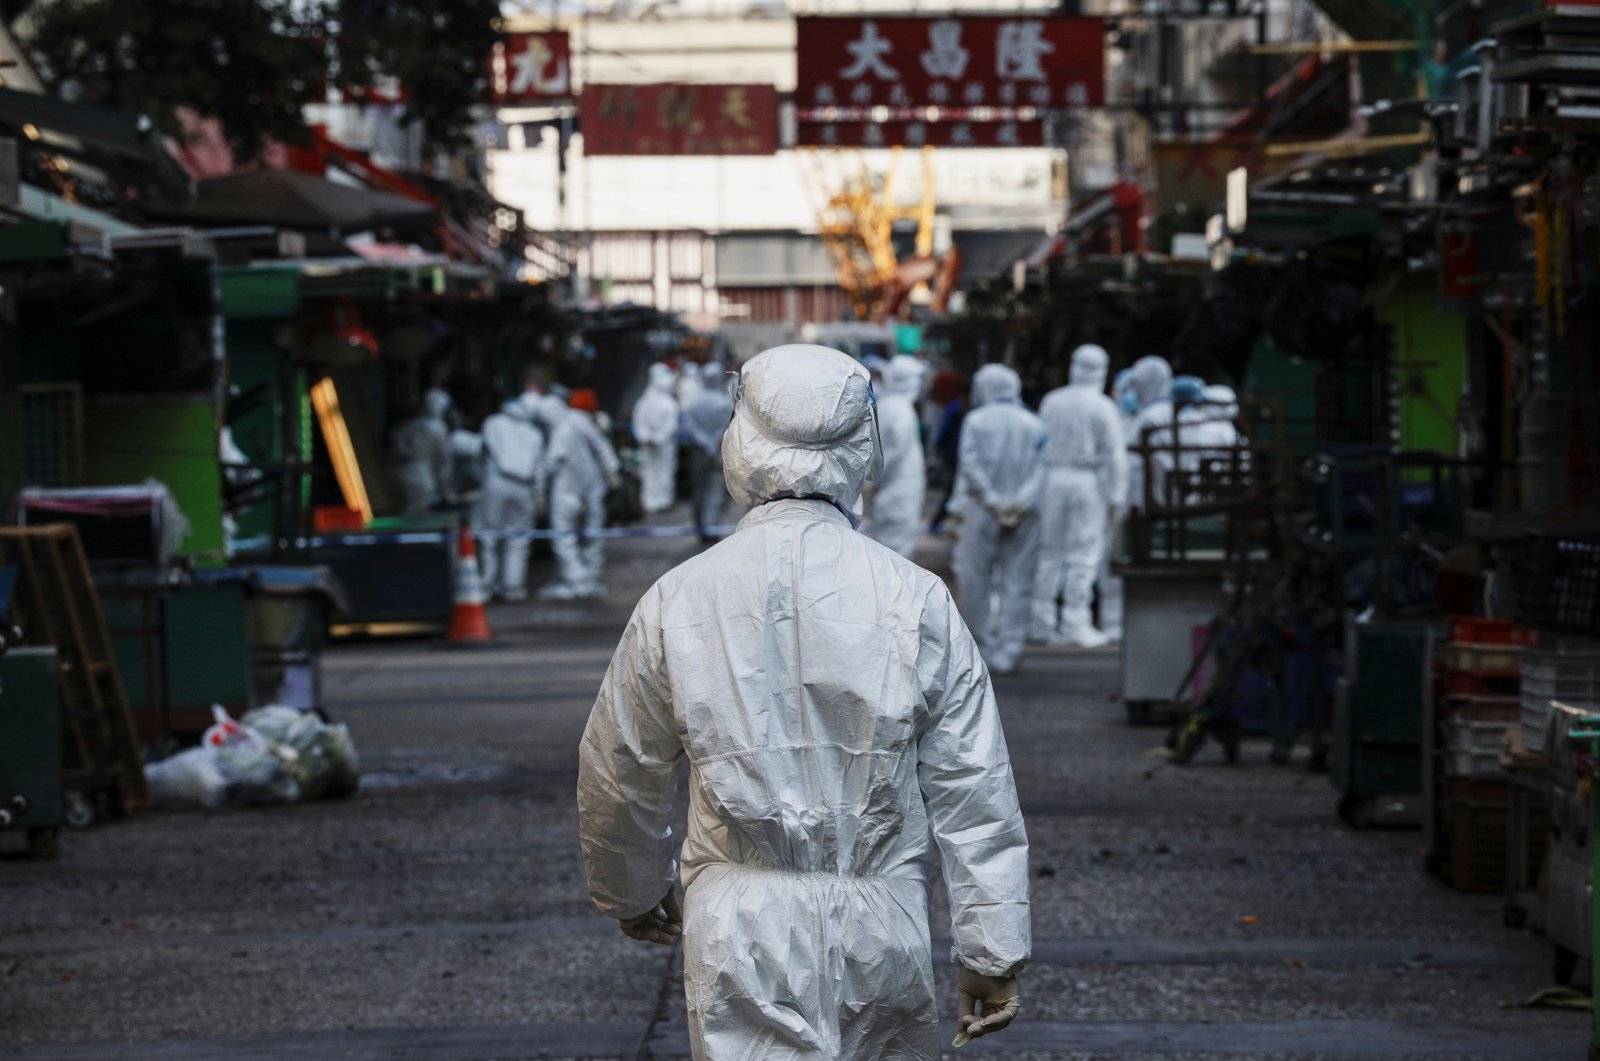 Health workers wear protective gear inside a locked down portion of the Jordan residential area to contain a new outbreak of COVID-19, in Hong Kong, China on Jan. 23, 2021. (Reuters Photo)